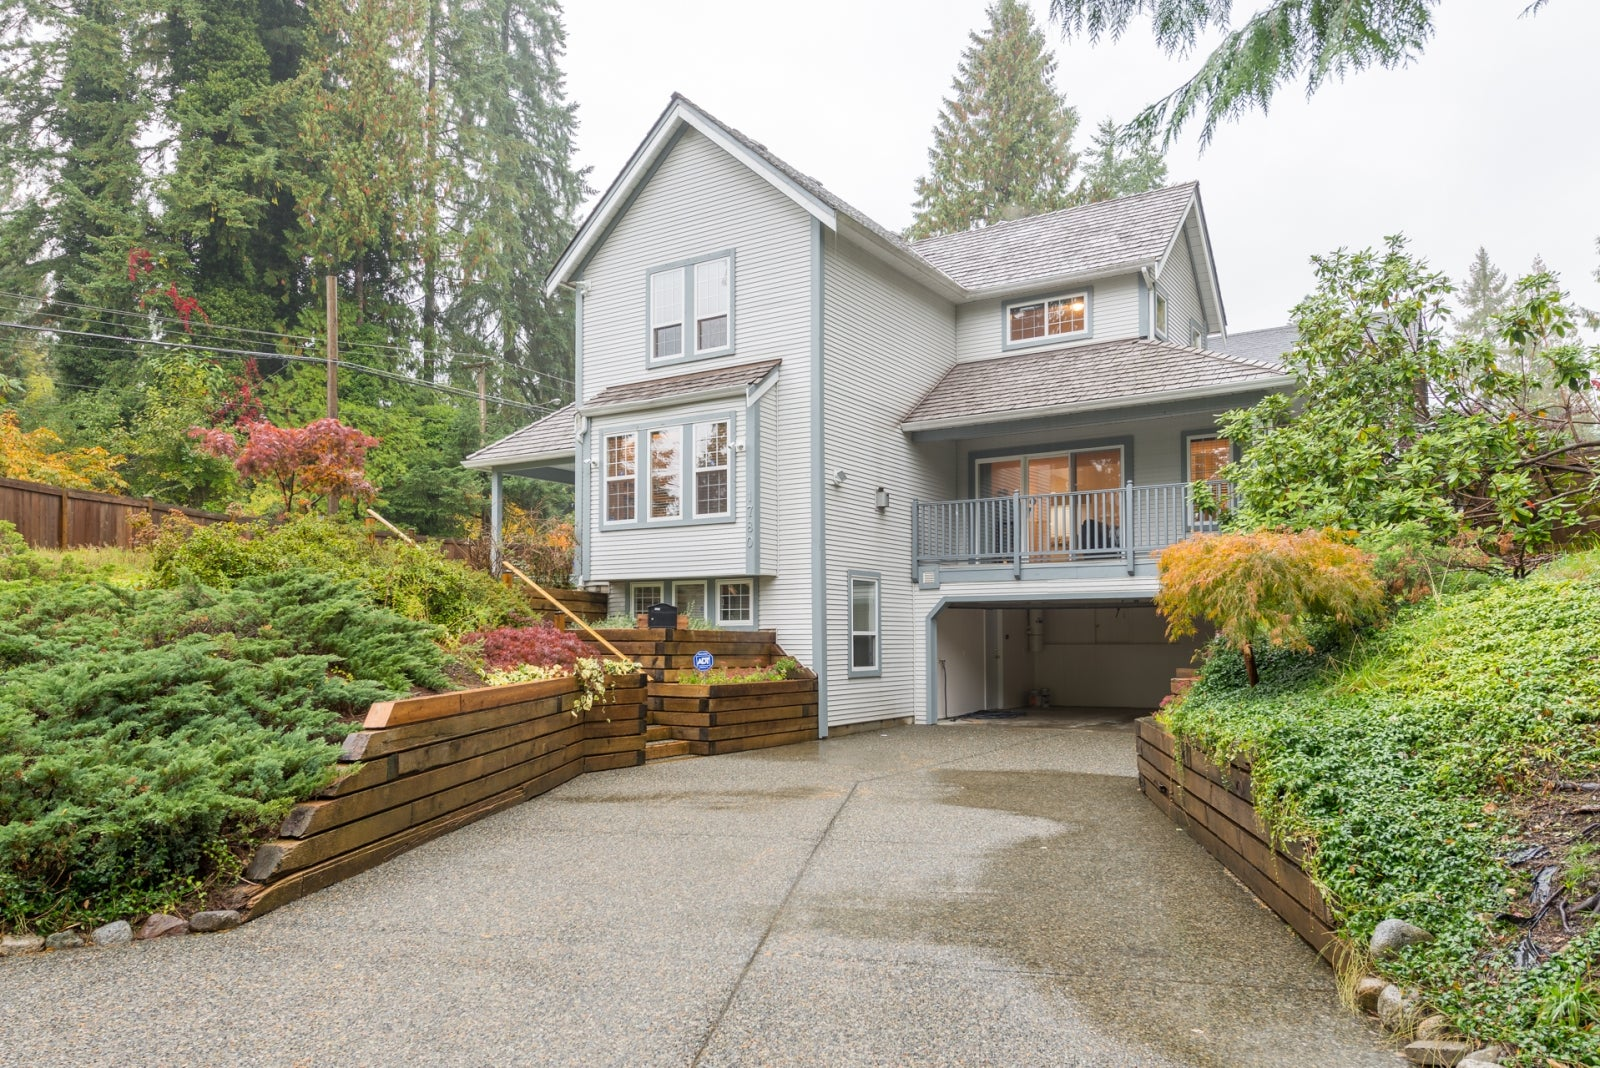 1780 LANGWORTHY STREET - Lynn Valley House/Single Family for sale, 4 Bedrooms (R2215480) #1